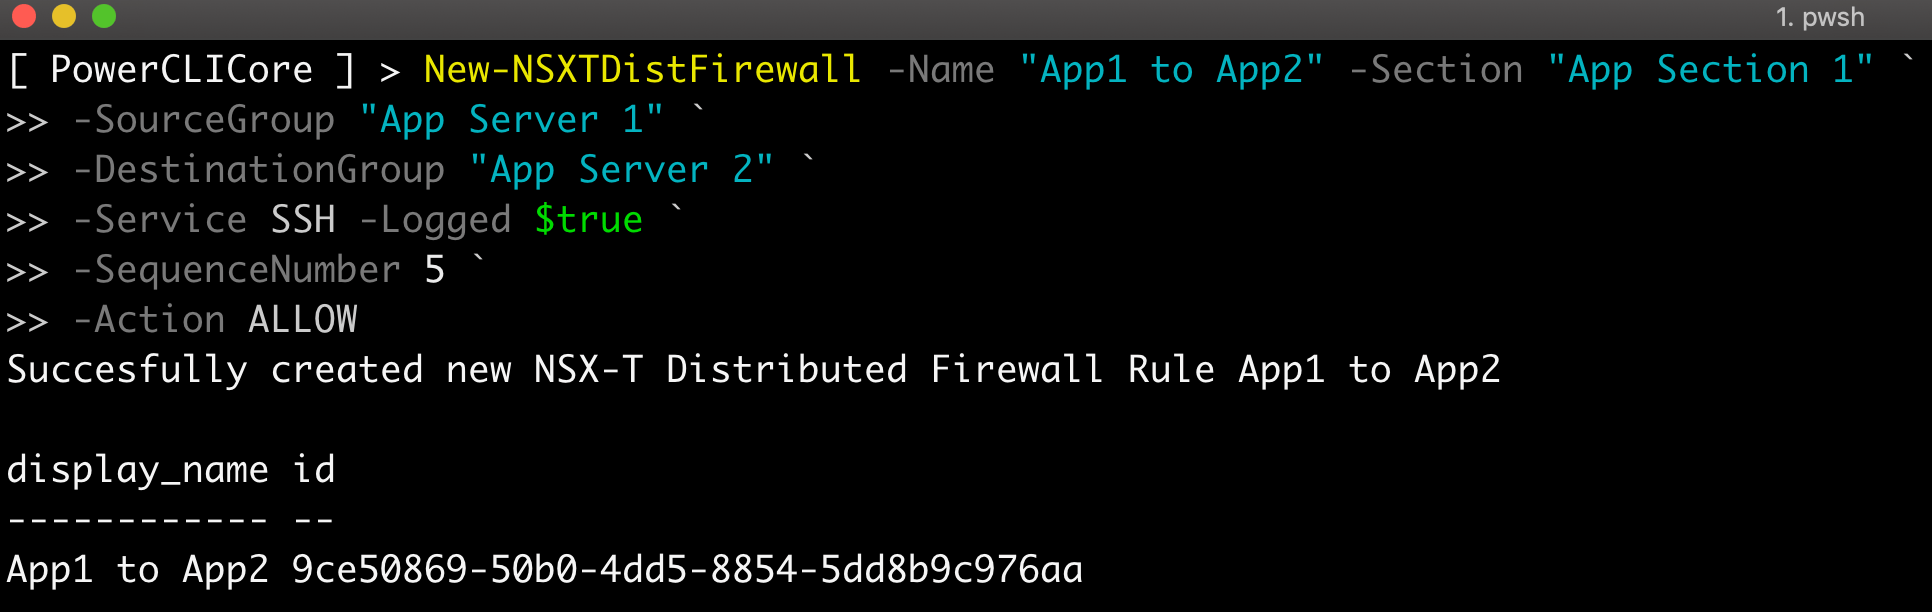 Managing Distributed Firewall Rules in VMC using PowerShell